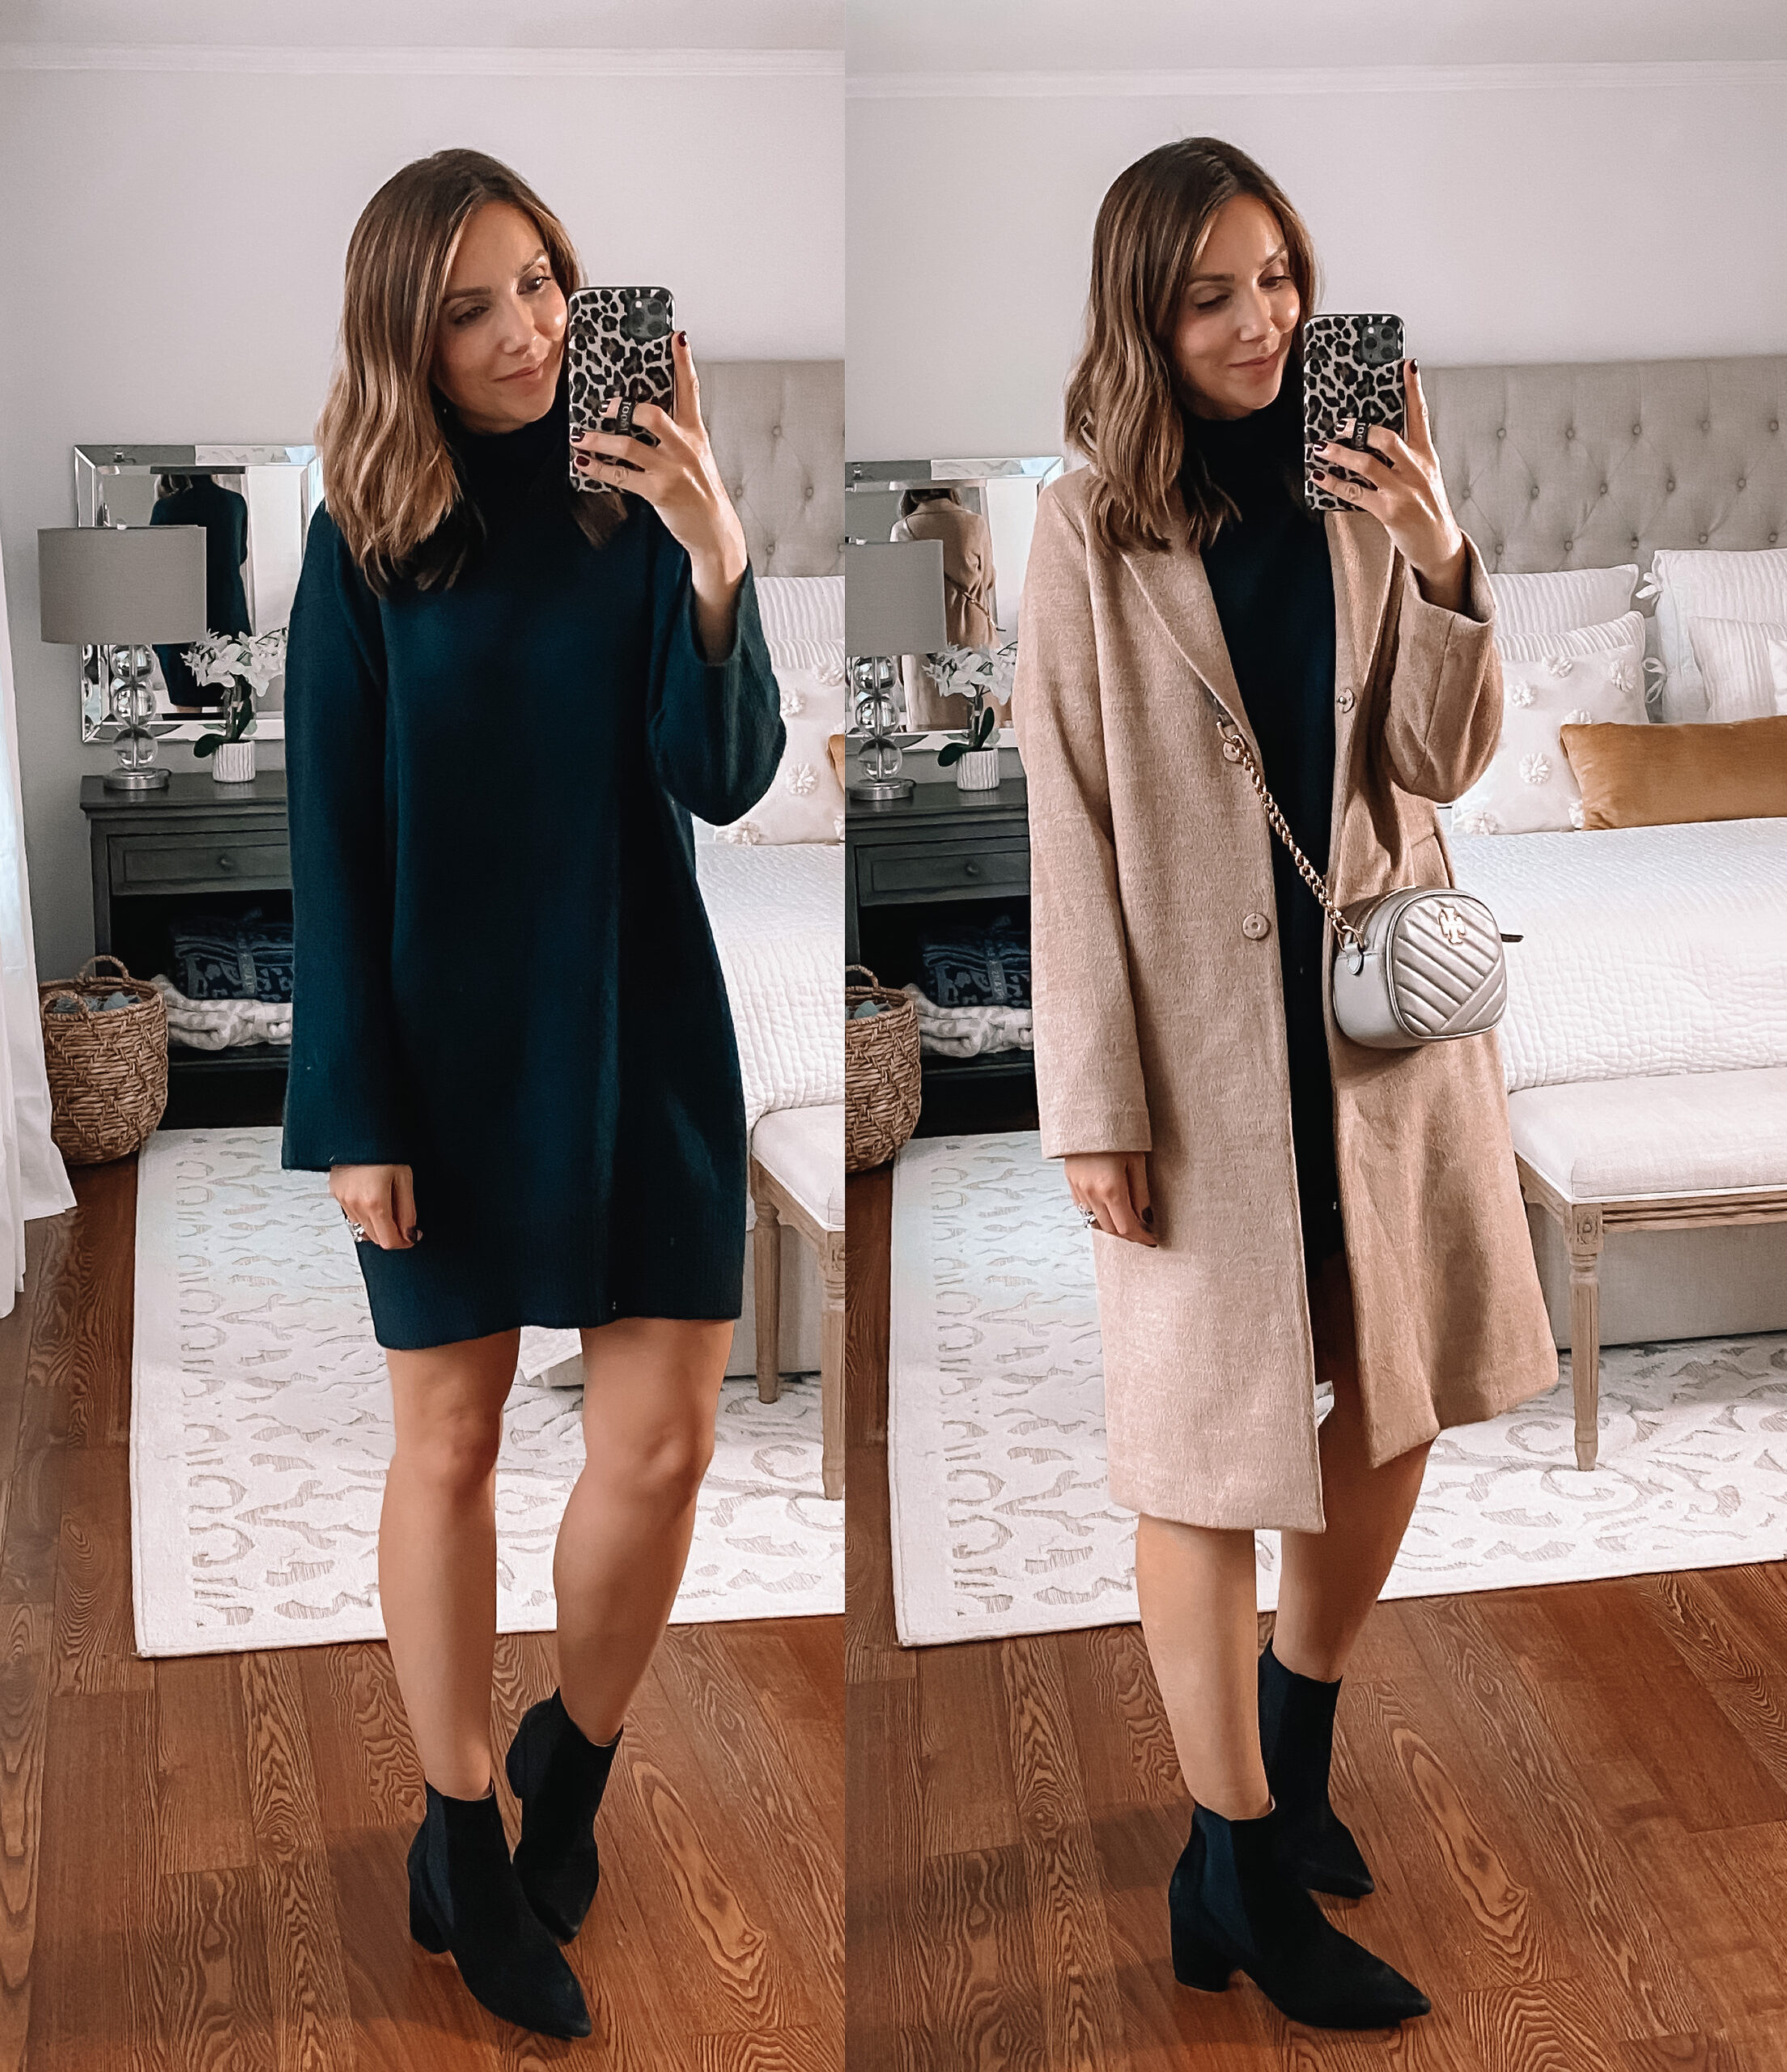 target black sweater dress, fall outfit, target style